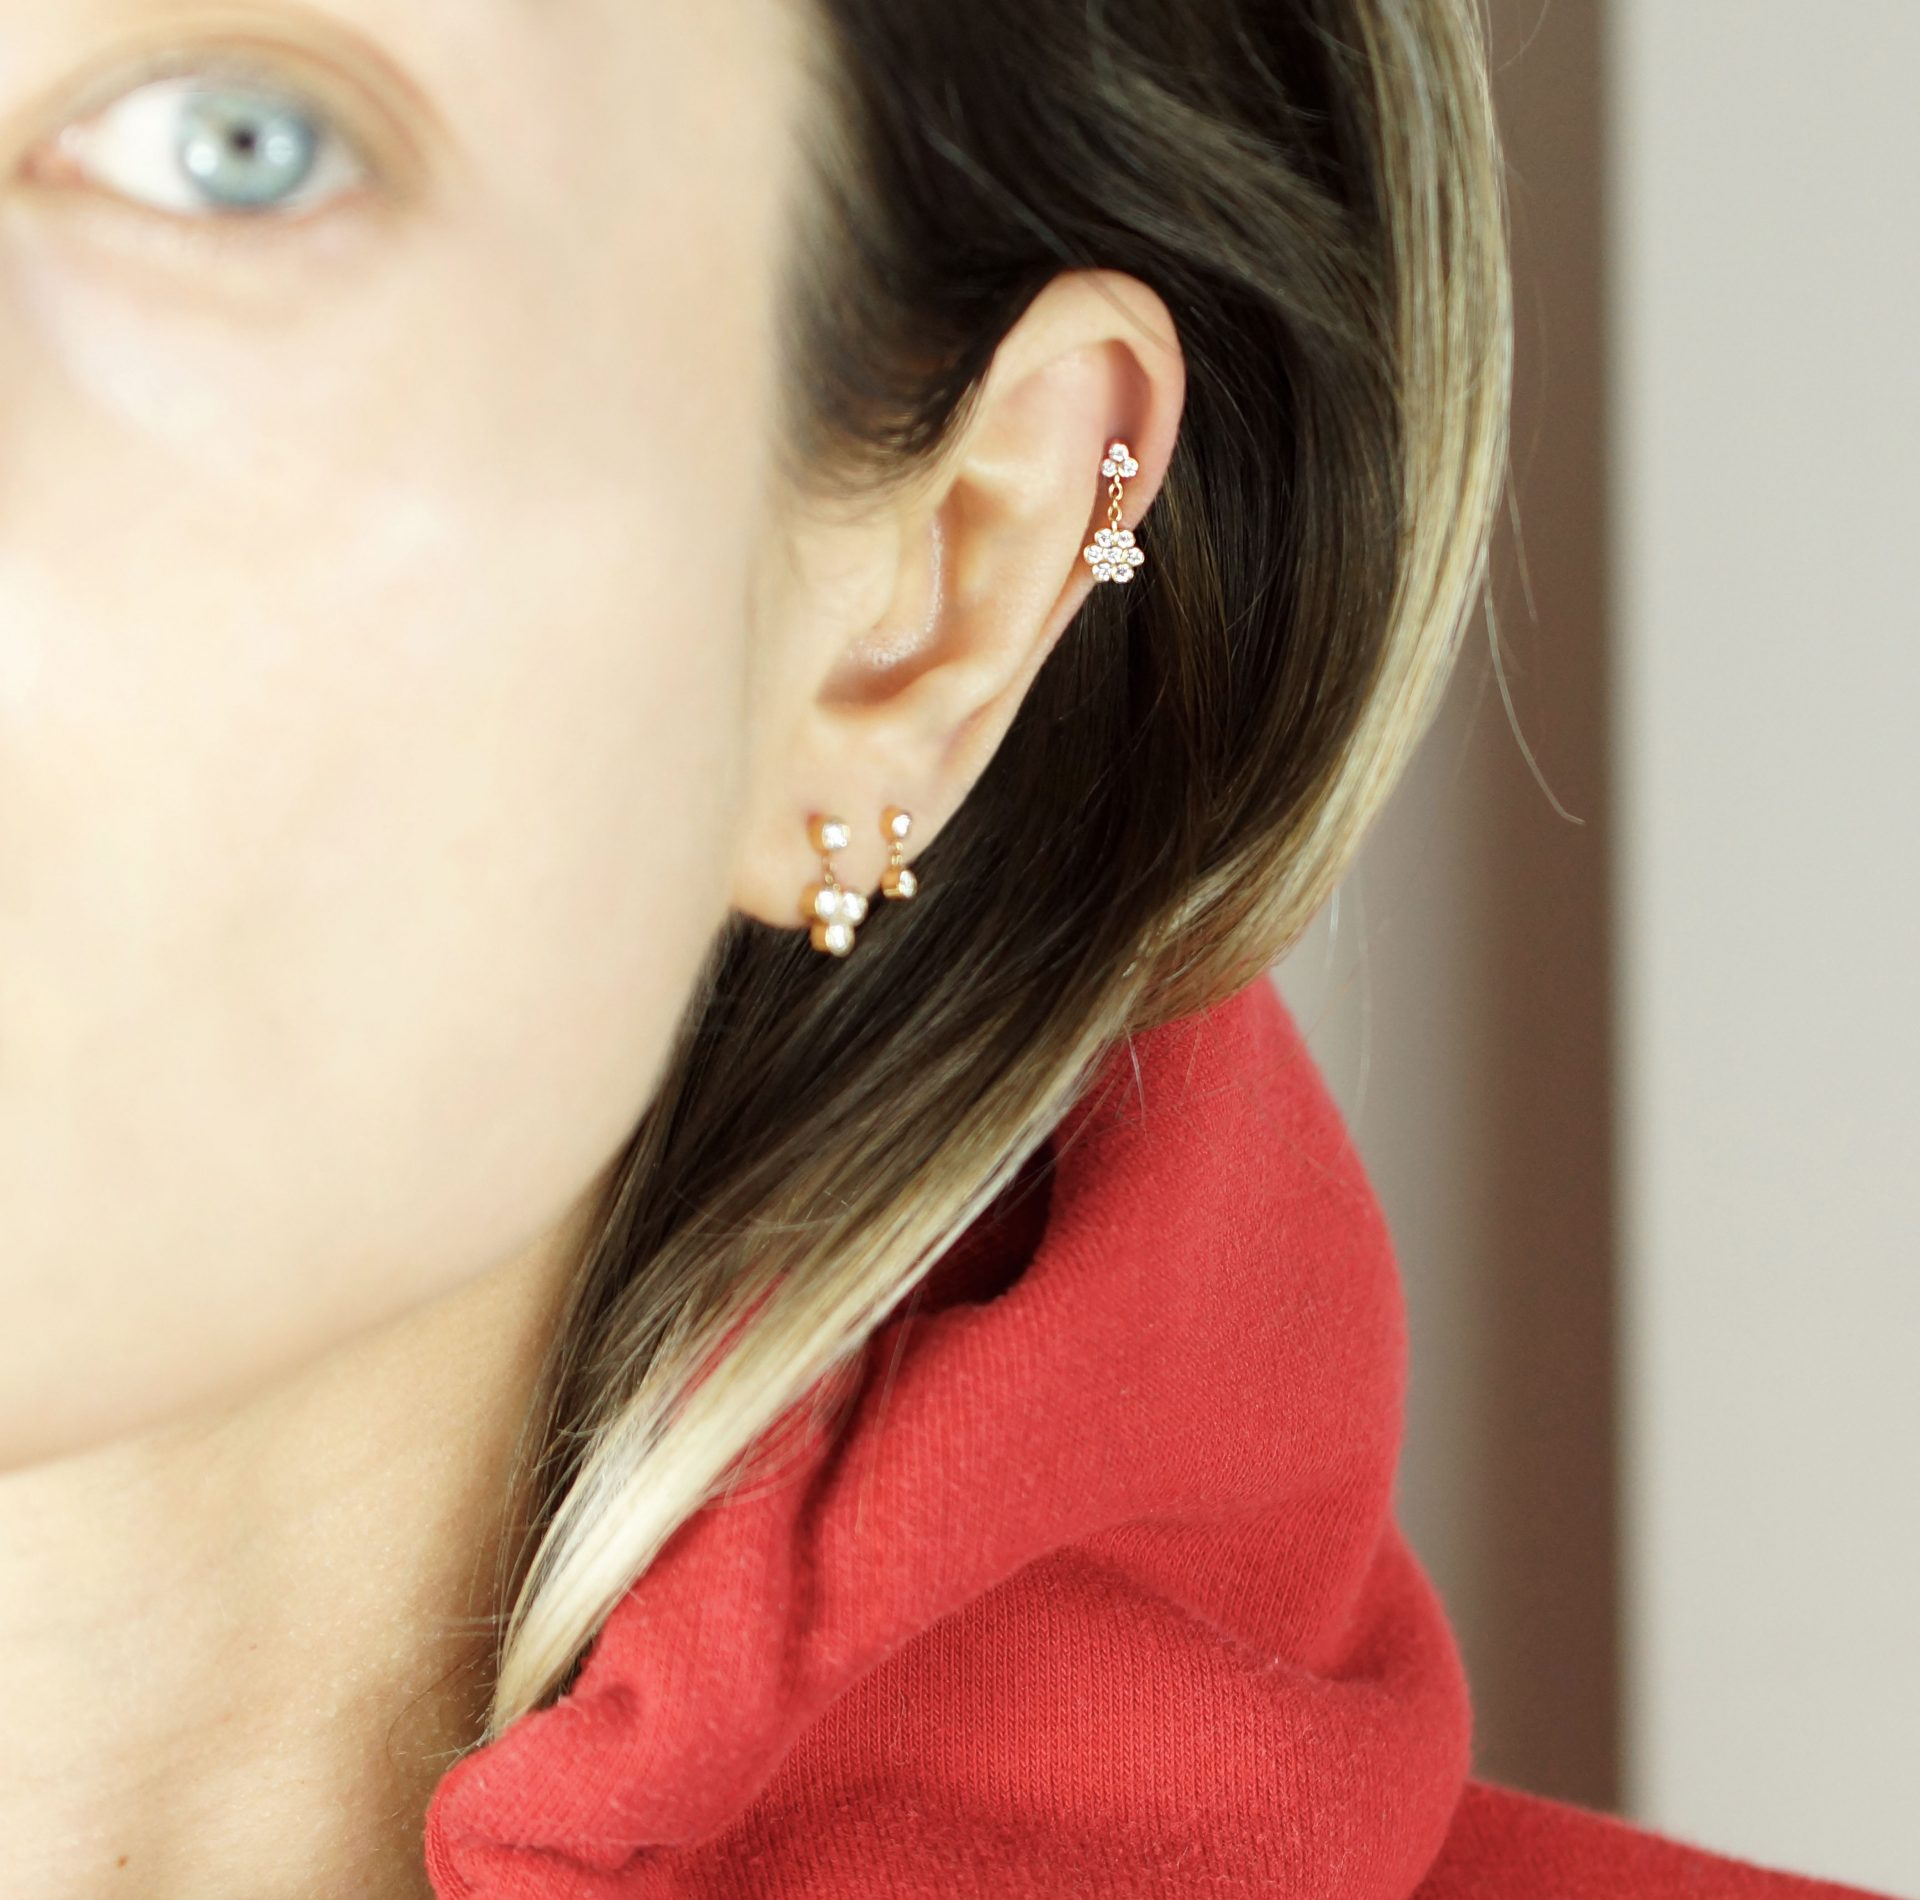 lena-cohen-luxury-piercing-british-designer-18K-solid-yellow-gold-cartilage-earring-for-tragus-helix-earlobe